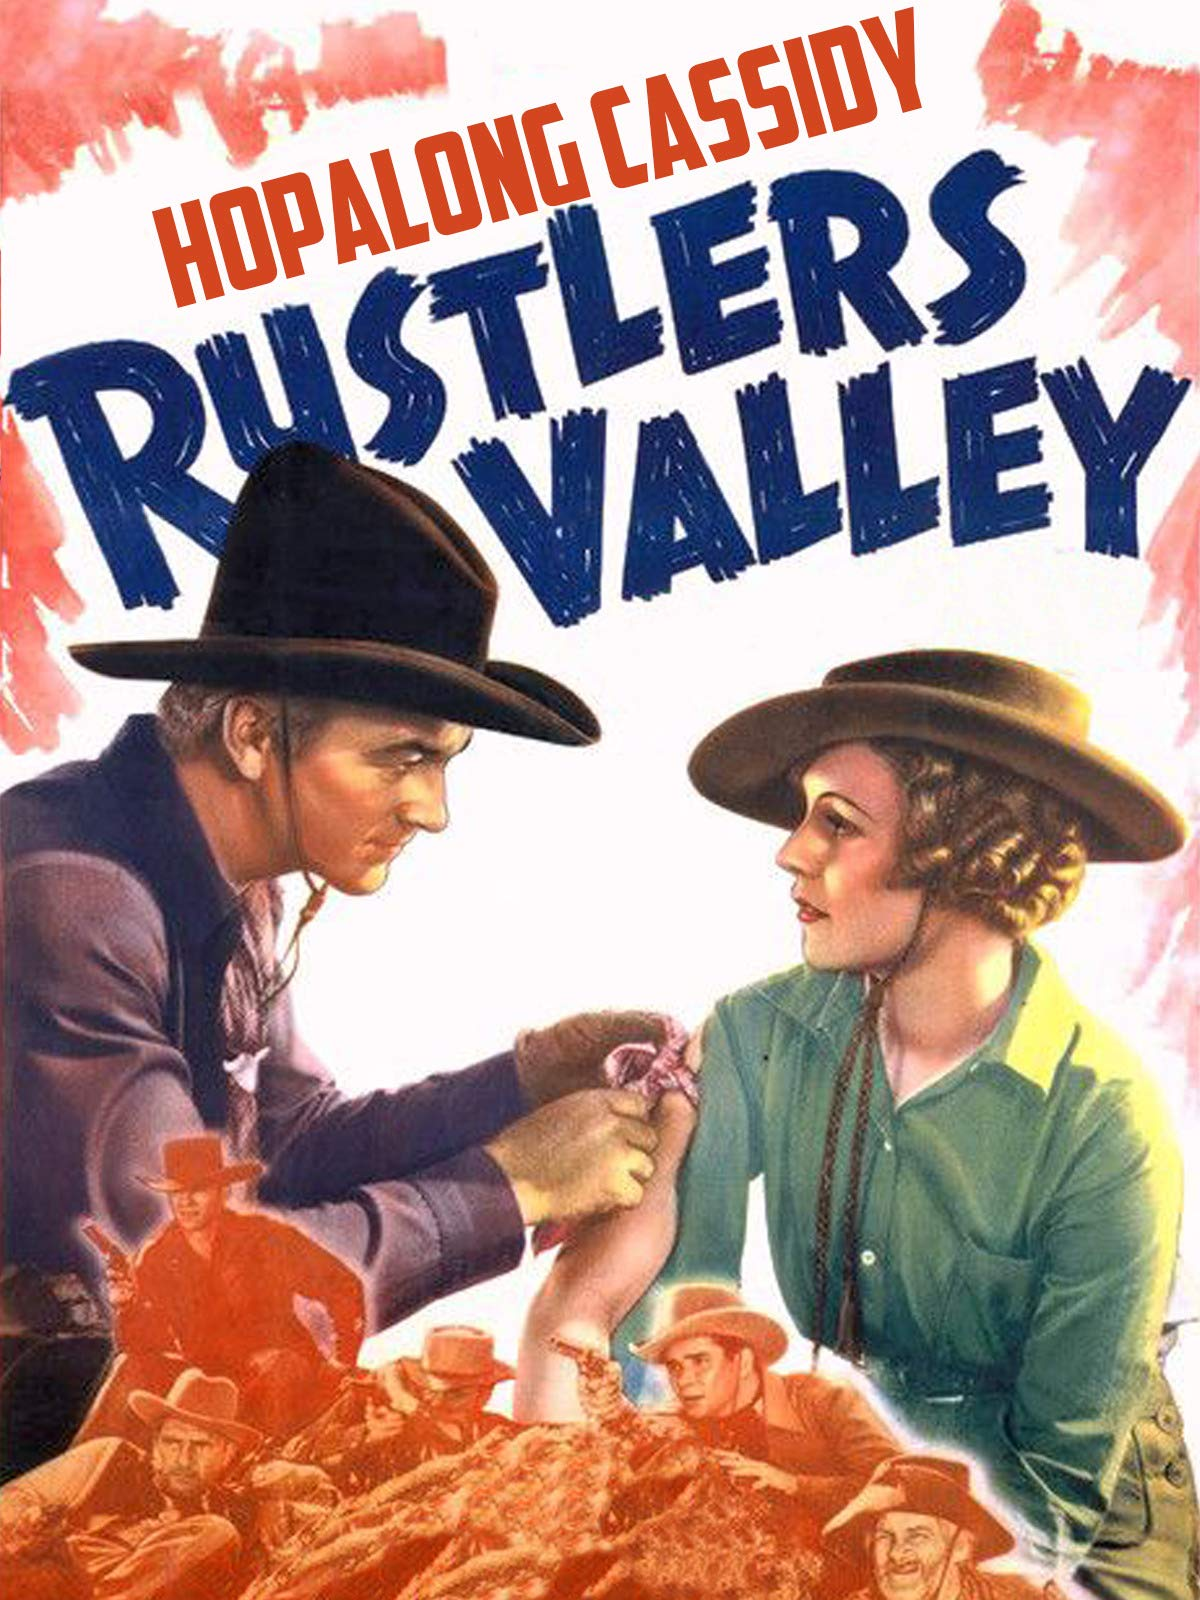 Hopalong Cassidy Rustlers' Valley on Amazon Prime Video UK